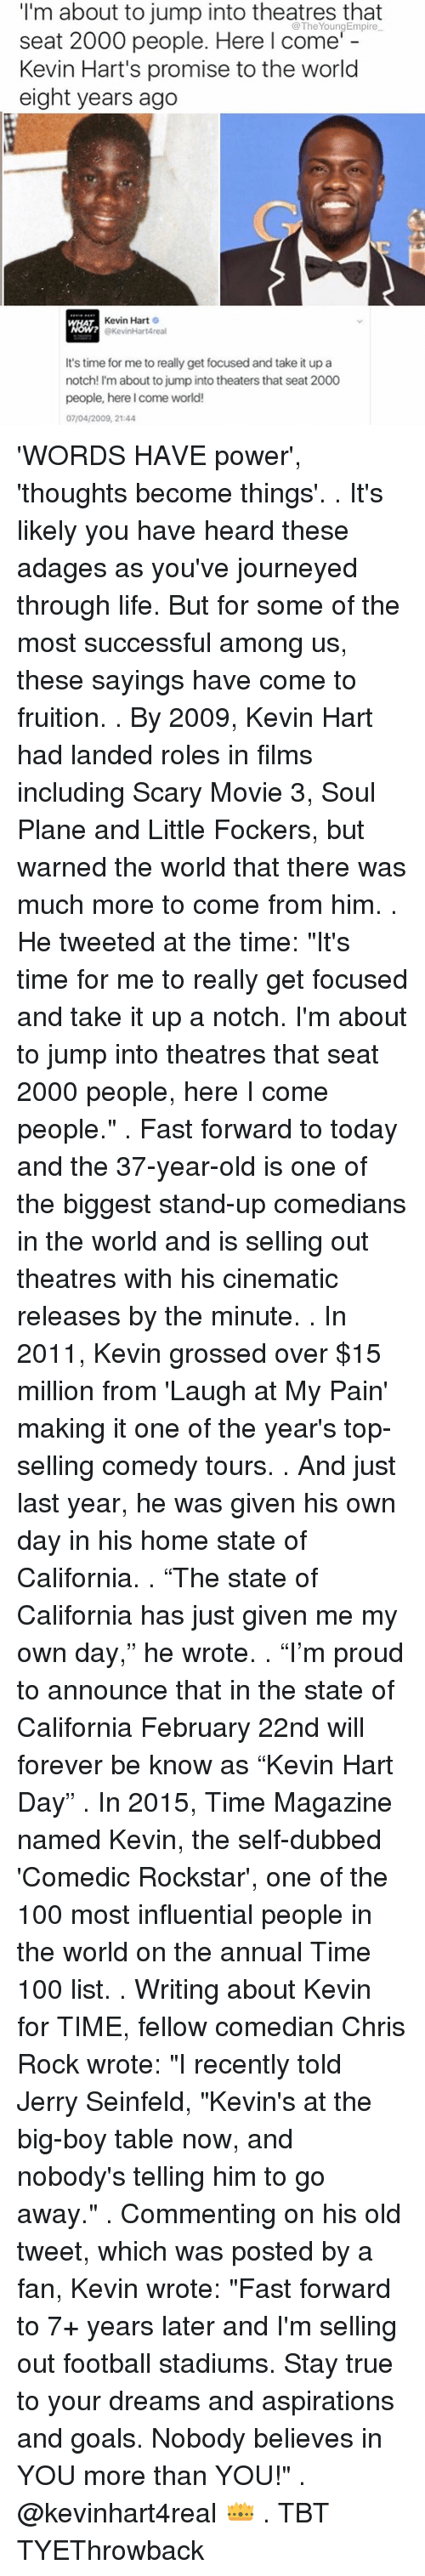 "Chris Rock, Jerry Seinfeld, and Kevin Hart: I'm about to jump into theatres that  seat 2000 people. Here I come'  Kevin Hart's promise to the world  eight years ago  Kevin Hart  O  @KevinHartAreal  It's time for me to really get focused and take it up a  notch! I'm about to jump into theaters that seat 2000  people, here I come world!  07/04/2009, 21:44 'WORDS HAVE power', 'thoughts become things'. . It's likely you have heard these adages as you've journeyed through life. But for some of the most successful among us, these sayings have come to fruition. . By 2009, Kevin Hart had landed roles in films including Scary Movie 3, Soul Plane and Little Fockers, but warned the world that there was much more to come from him. . He tweeted at the time: ""It's time for me to really get focused and take it up a notch. I'm about to jump into theatres that seat 2000 people, here I come people."" . Fast forward to today and the 37-year-old is one of the biggest stand-up comedians in the world and is selling out theatres with his cinematic releases by the minute. . In 2011, Kevin grossed over $15 million from 'Laugh at My Pain' making it one of the year's top-selling comedy tours. . And just last year, he was given his own day in his home state of California. . ""The state of California has just given me my own day,"" he wrote. . ""I'm proud to announce that in the state of California February 22nd will forever be know as ""Kevin Hart Day"" . In 2015, Time Magazine named Kevin, the self-dubbed 'Comedic Rockstar', one of the 100 most influential people in the world on the annual Time 100 list. . Writing about Kevin for TIME, fellow comedian Chris Rock wrote: ""I recently told Jerry Seinfeld, ""Kevin's at the big-boy table now, and nobody's telling him to go away."" . Commenting on his old tweet, which was posted by a fan, Kevin wrote: ""Fast forward to 7+ years later and I'm selling out football stadiums. Stay true to your dreams and aspirations and goals. Nobody believes in YOU more than YOU!"" . @kevinhart4real 👑 . TBT TYEThrowback"